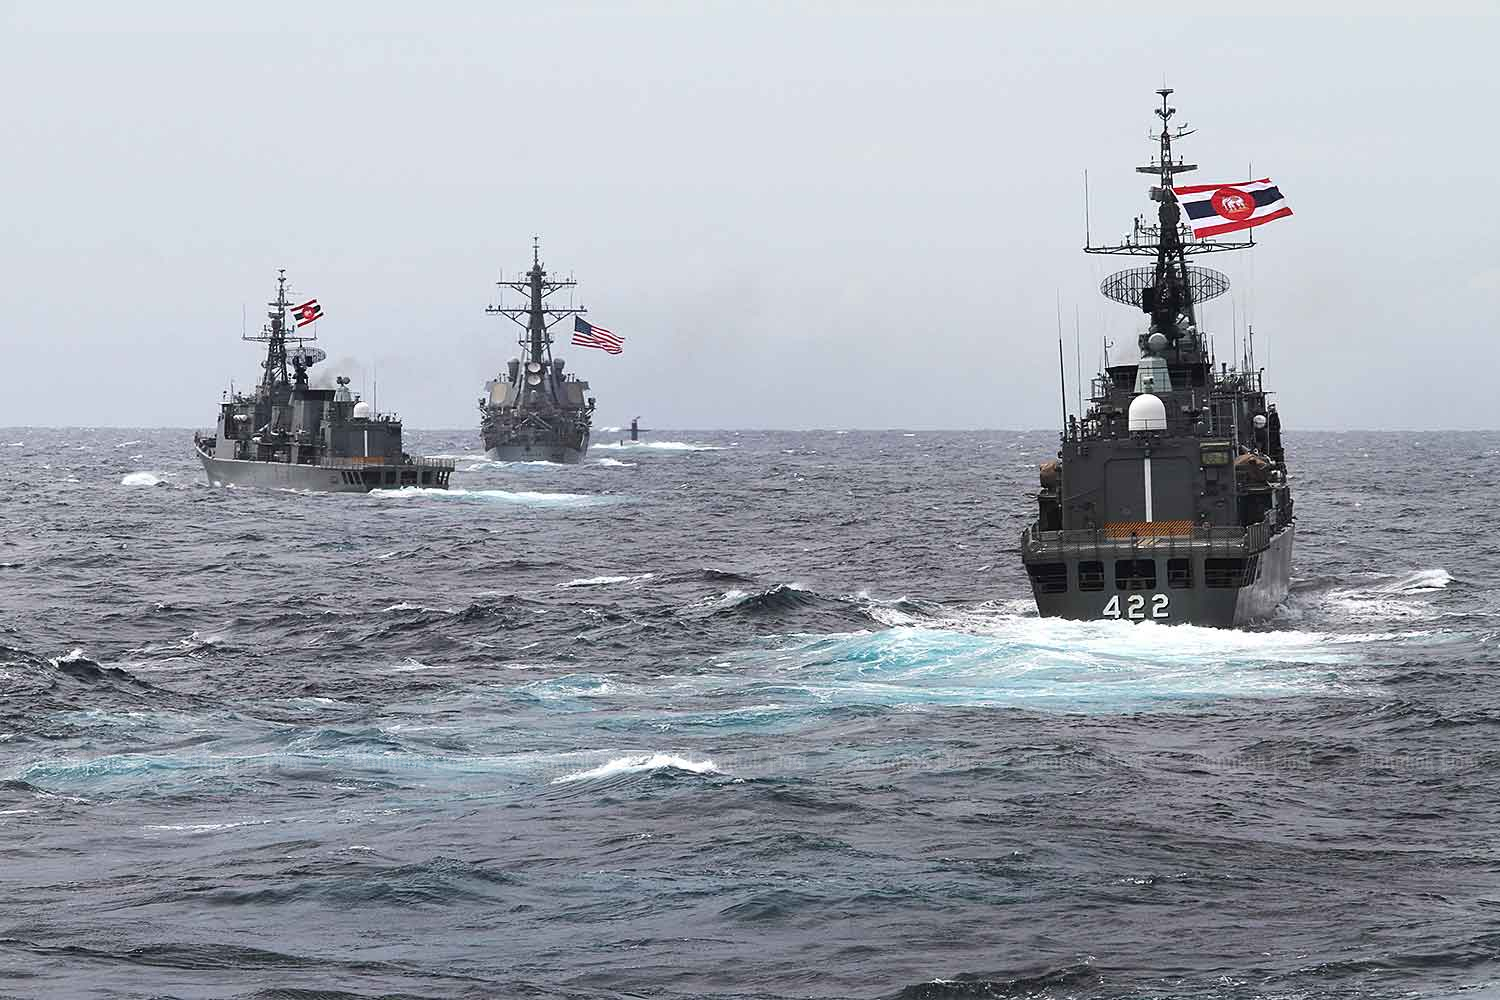 10 Asean nations launch first drill with US Navy